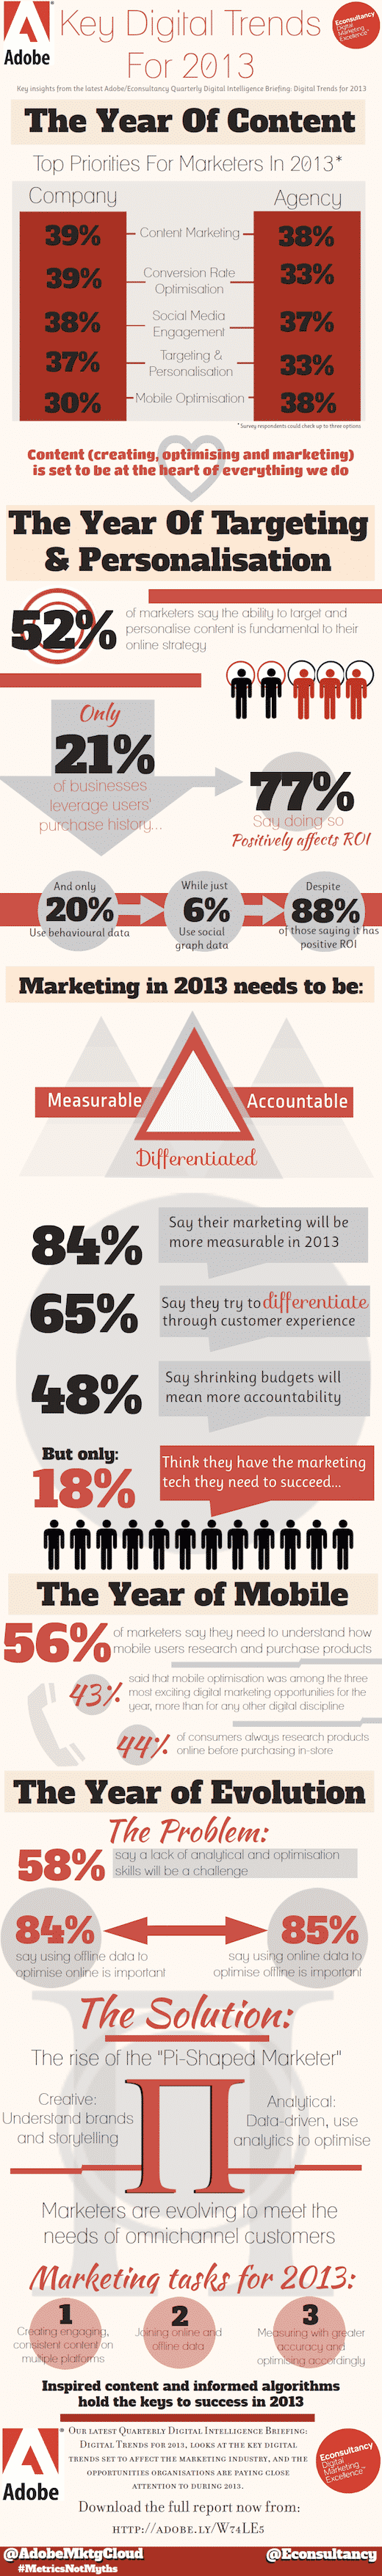 2013KeyMarketingTrends